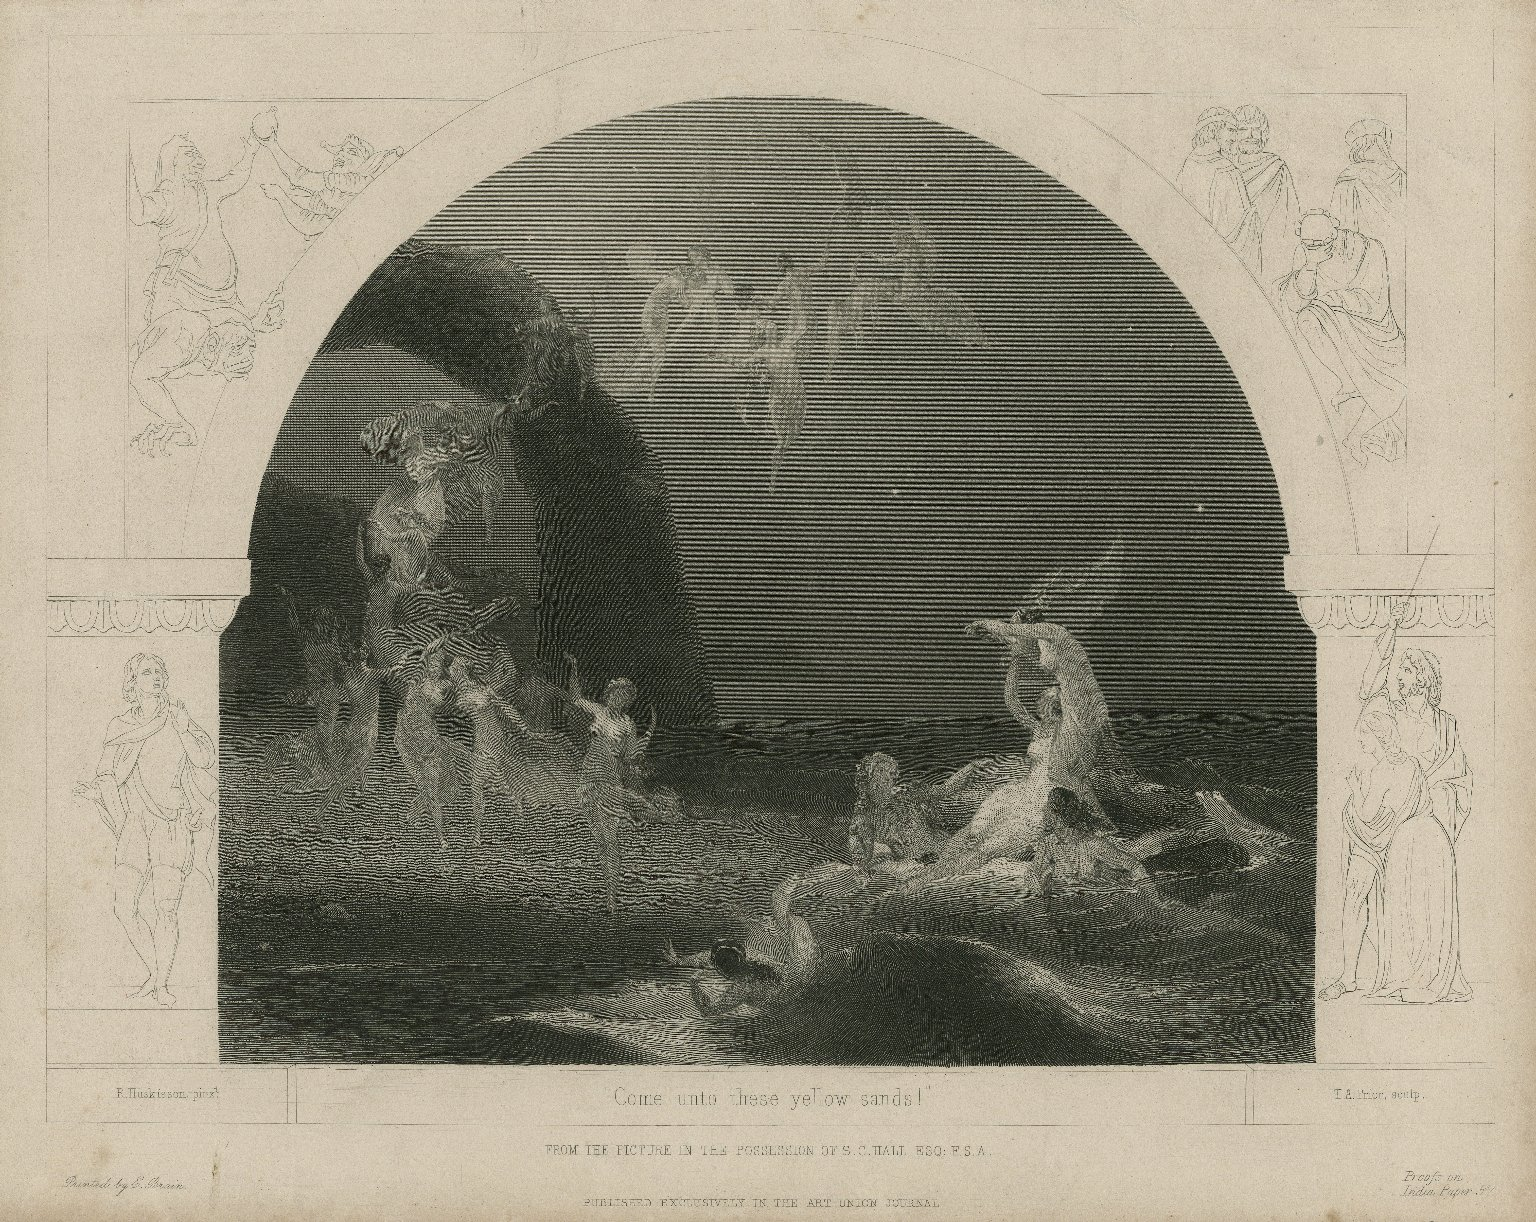 Come unto these yellow sands! ... [Tempest, act I, scene 2] [graphic] / R. Huskisson pinxt. ; T.A. Prior, sculp.